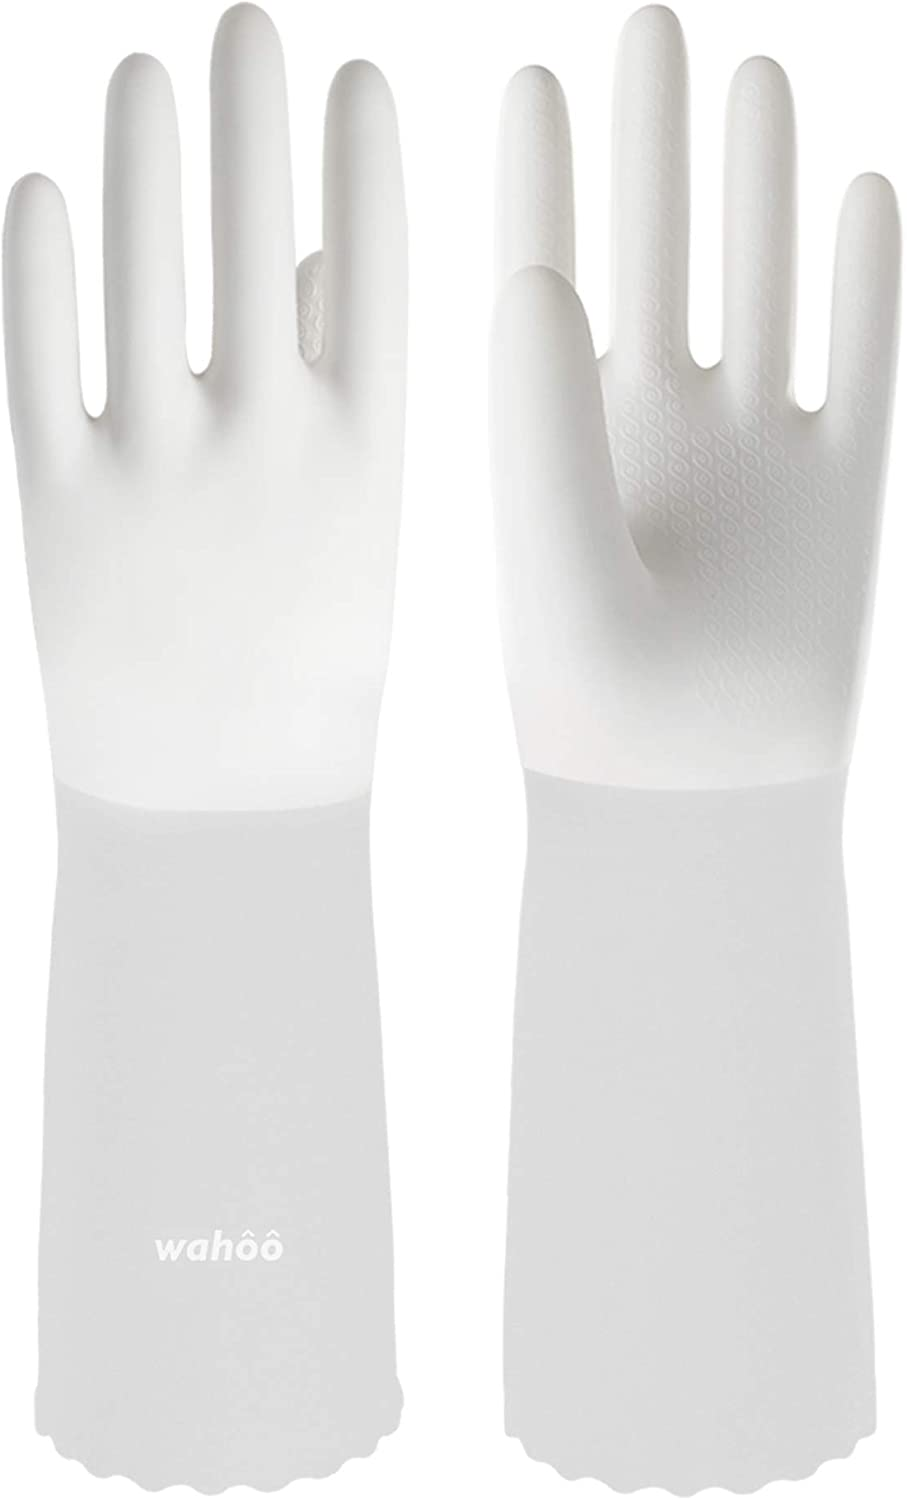 LANON Wahoo PVC Household Cleaning Gloves, Reusable Unlined Dishwashing Gloves, Semi Transparent Cuff, Non-Slip, Large